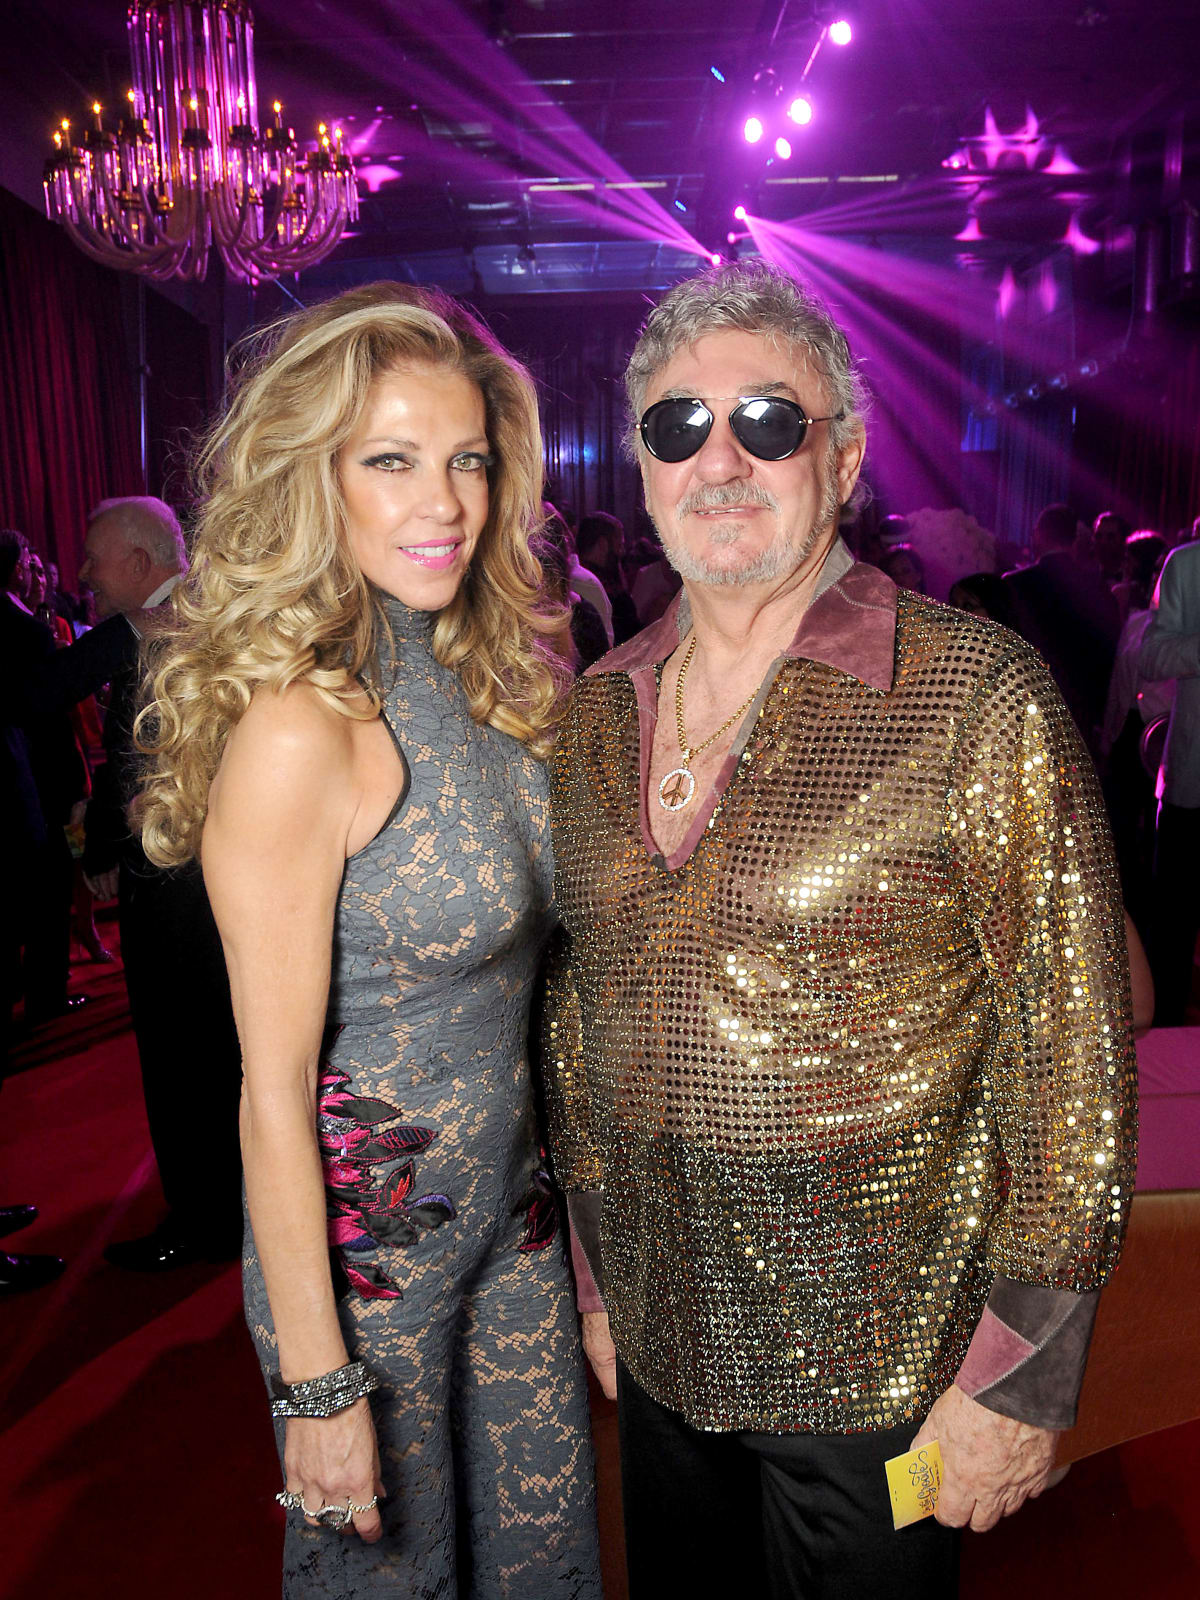 Susana Brener de Stern and Dr. Juan Stern at the Alley Theatre Ball